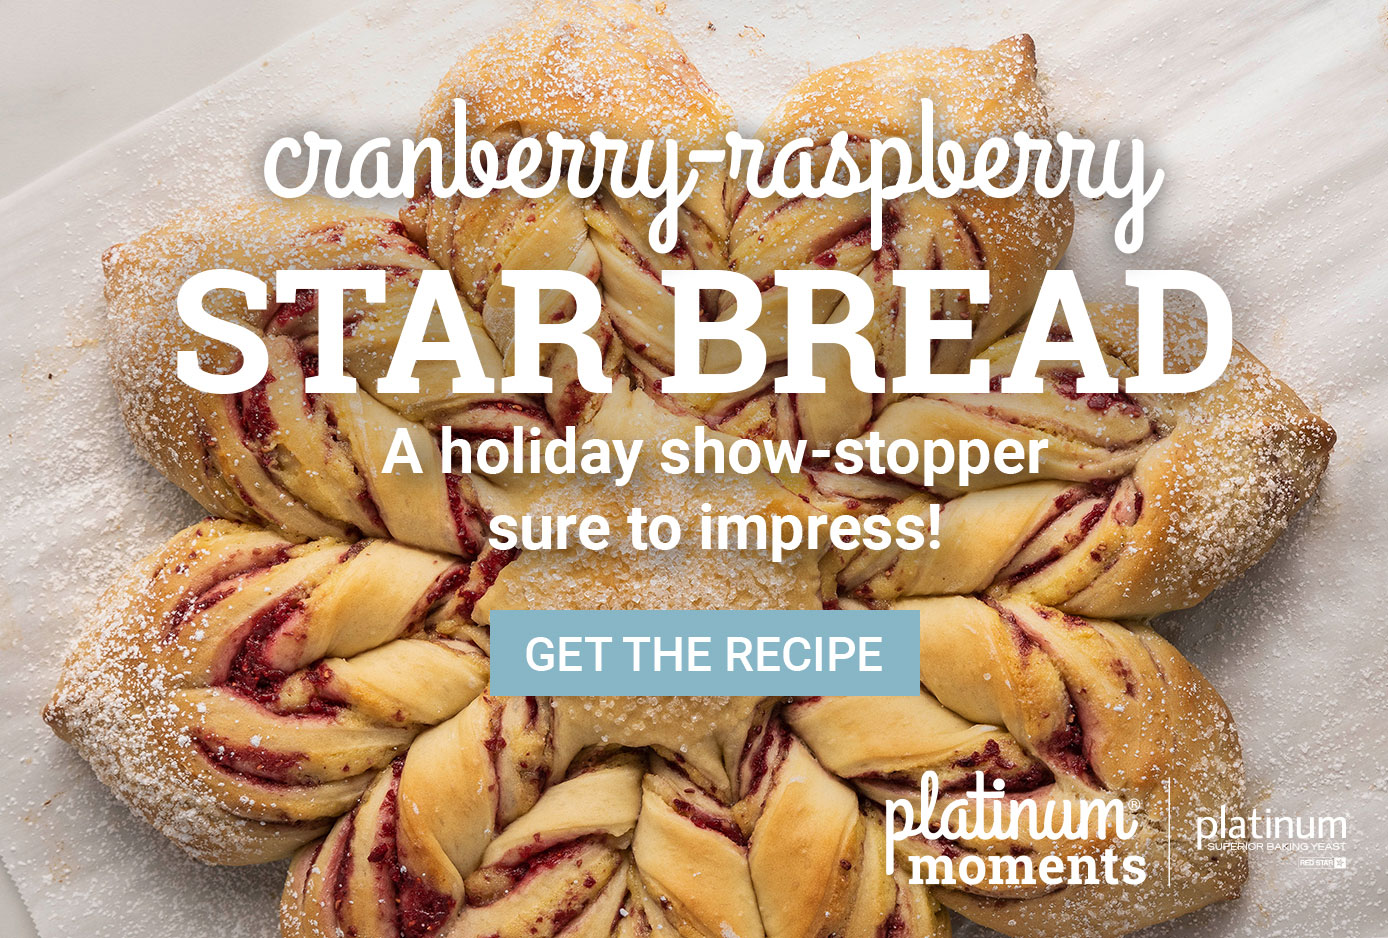 Cranberry Raspberry Star Bread | A holiday show stopper sure to impress.